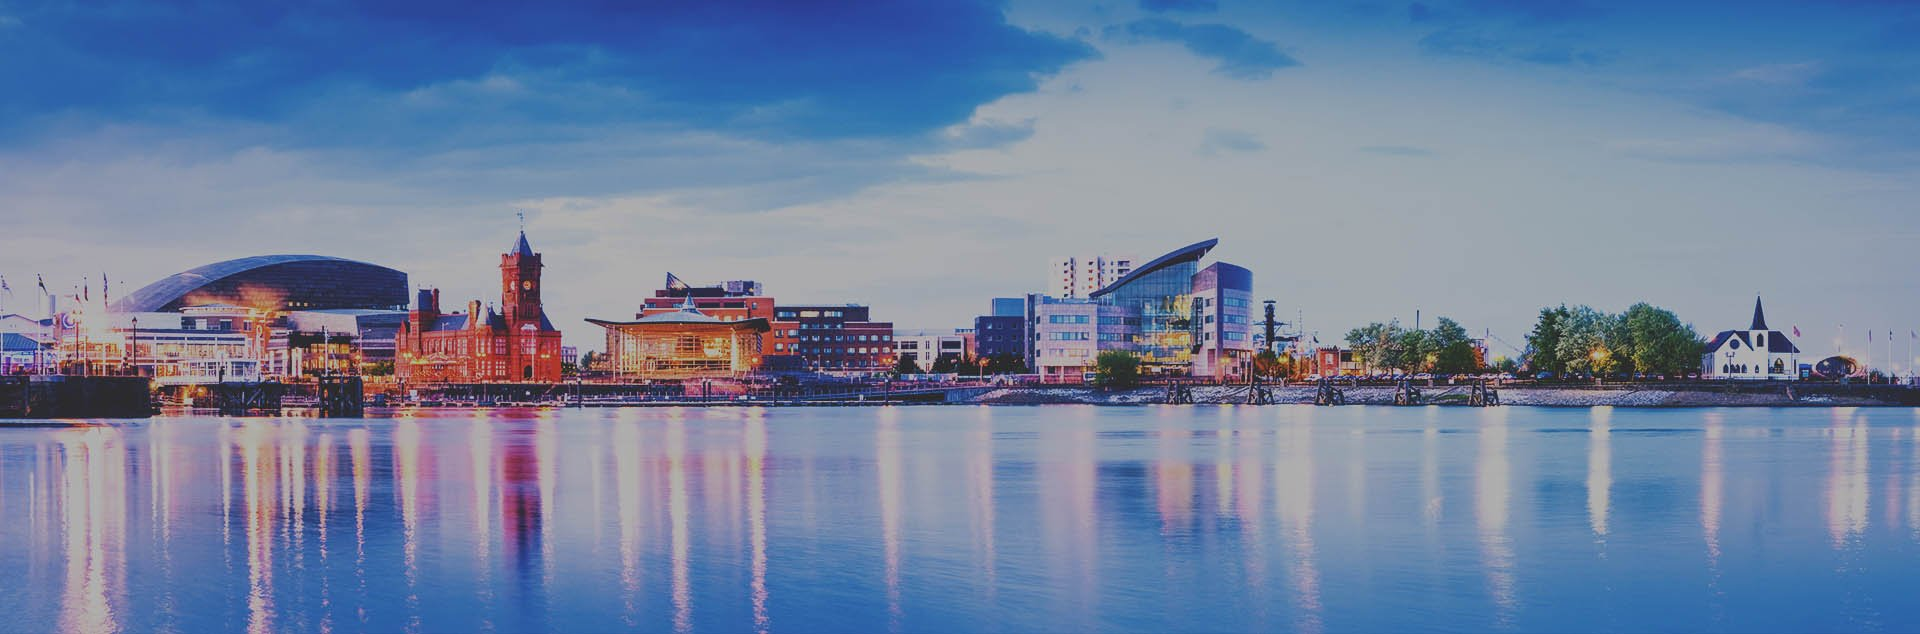 Looking over Cardiff Bay